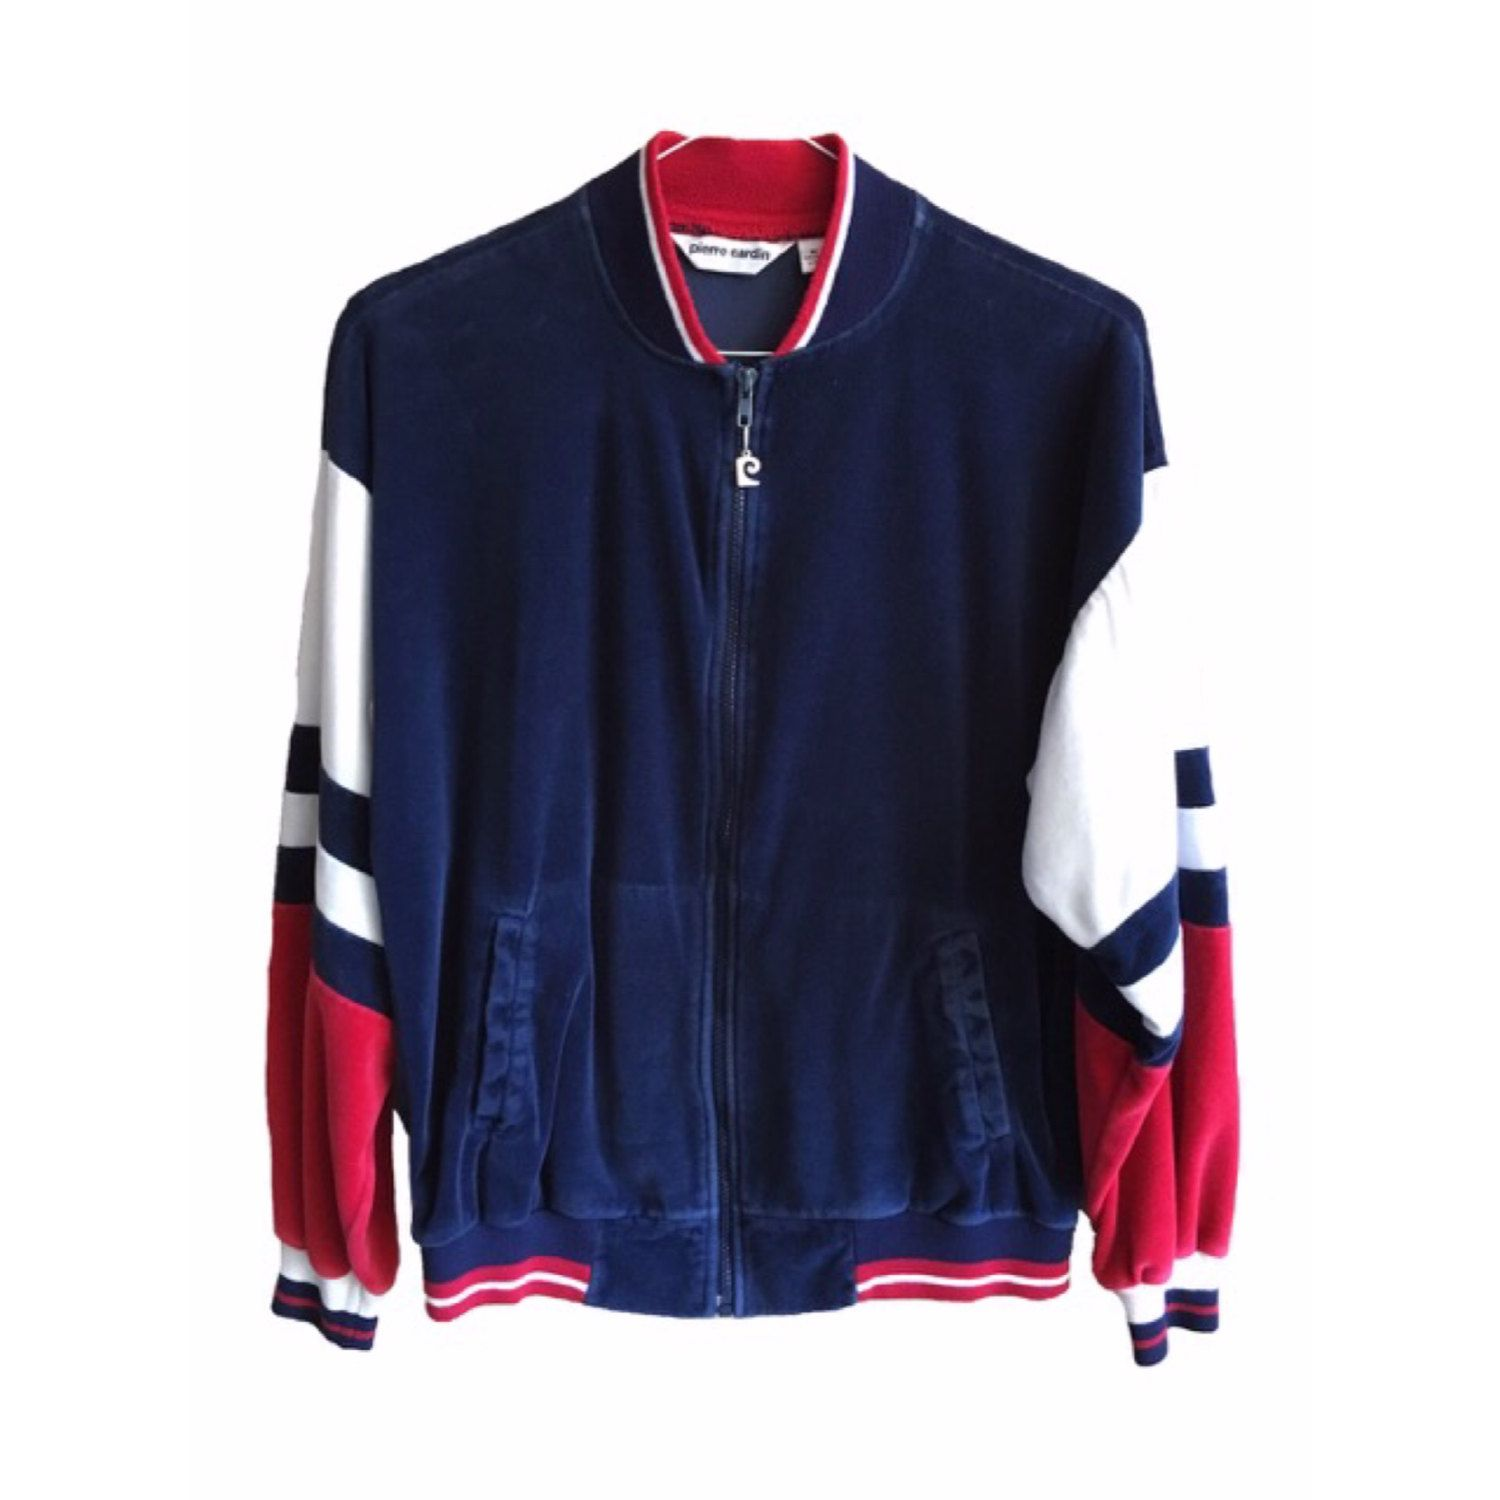 Pierre Cardin Track Jacket Cotton Sweater Zip Up Red White Etsy Clothes Cotton Sweater Track Jackets